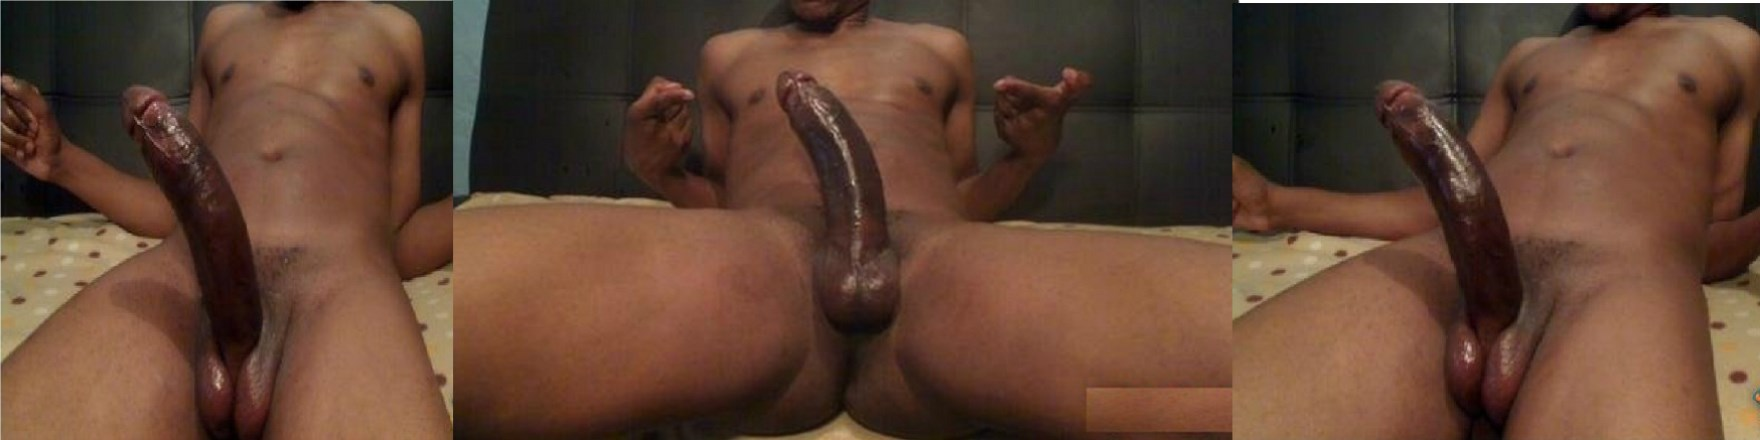 Master has a big chocolate cock for you